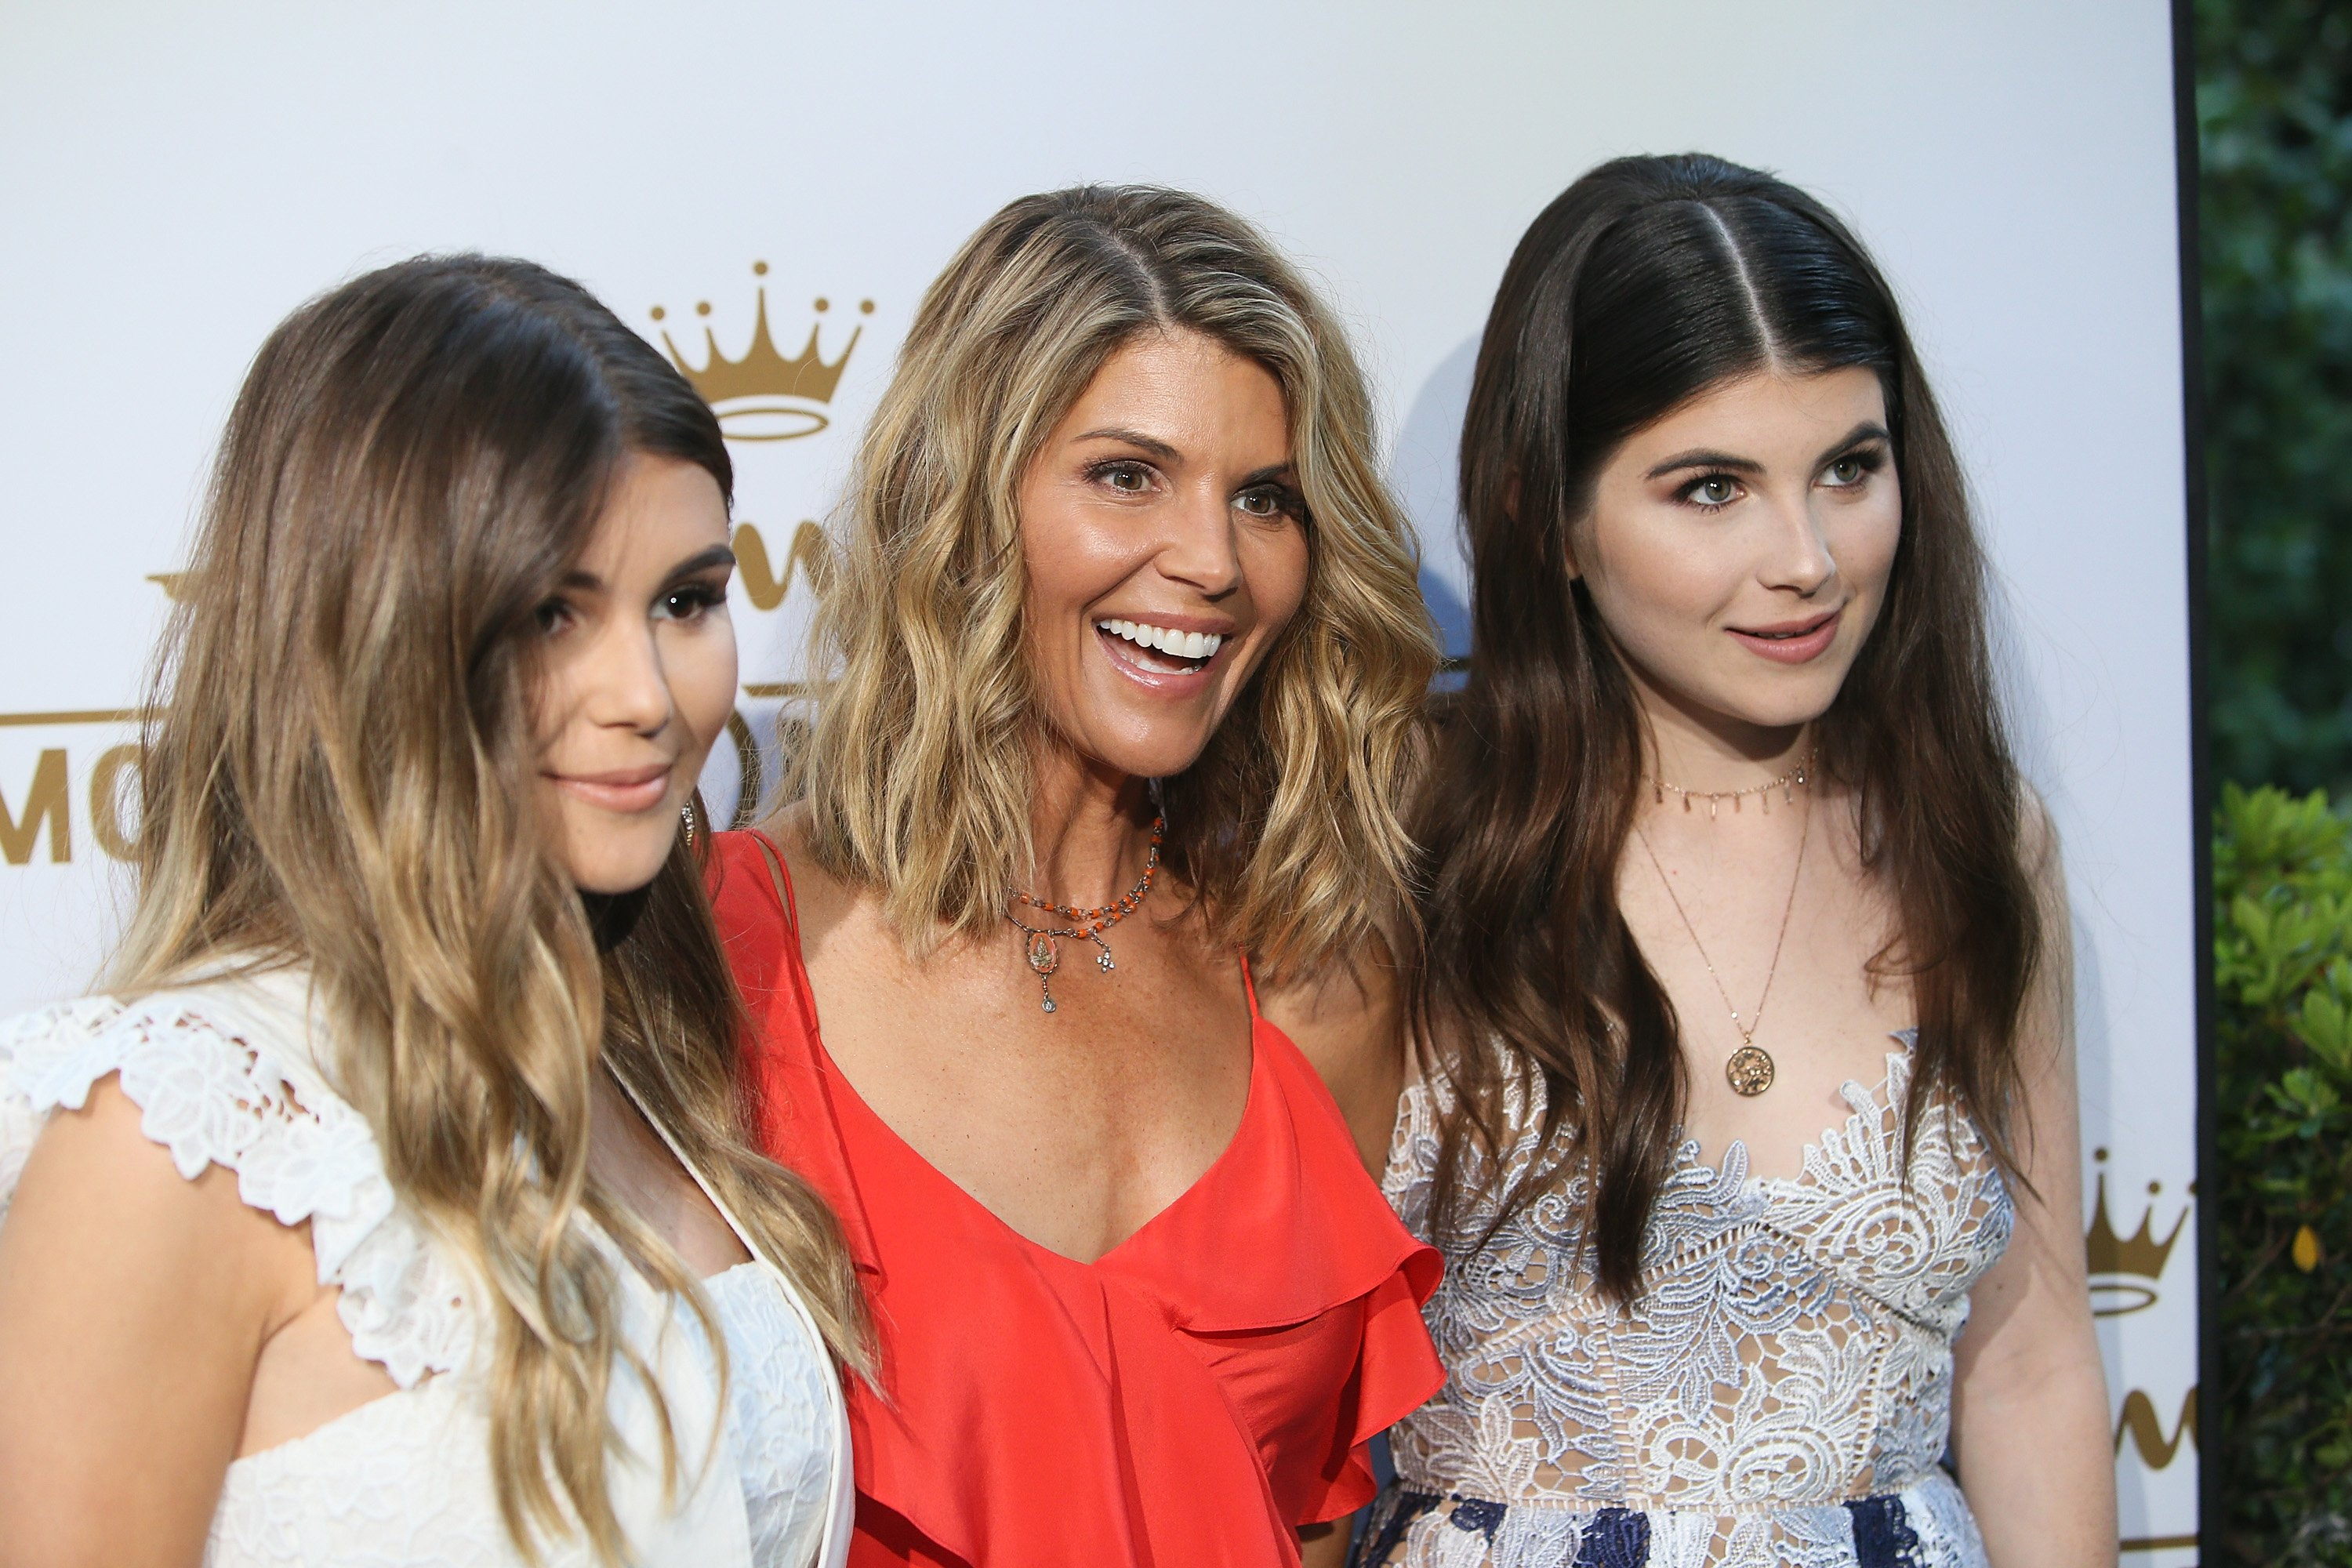 Lori Loughlin with daughters Isabella Rose and Olivia Jadei at the Hallmark Channel and Hallmark Movies and Mysteries 2017 Summer TCA Tour   Photo: Getty Images